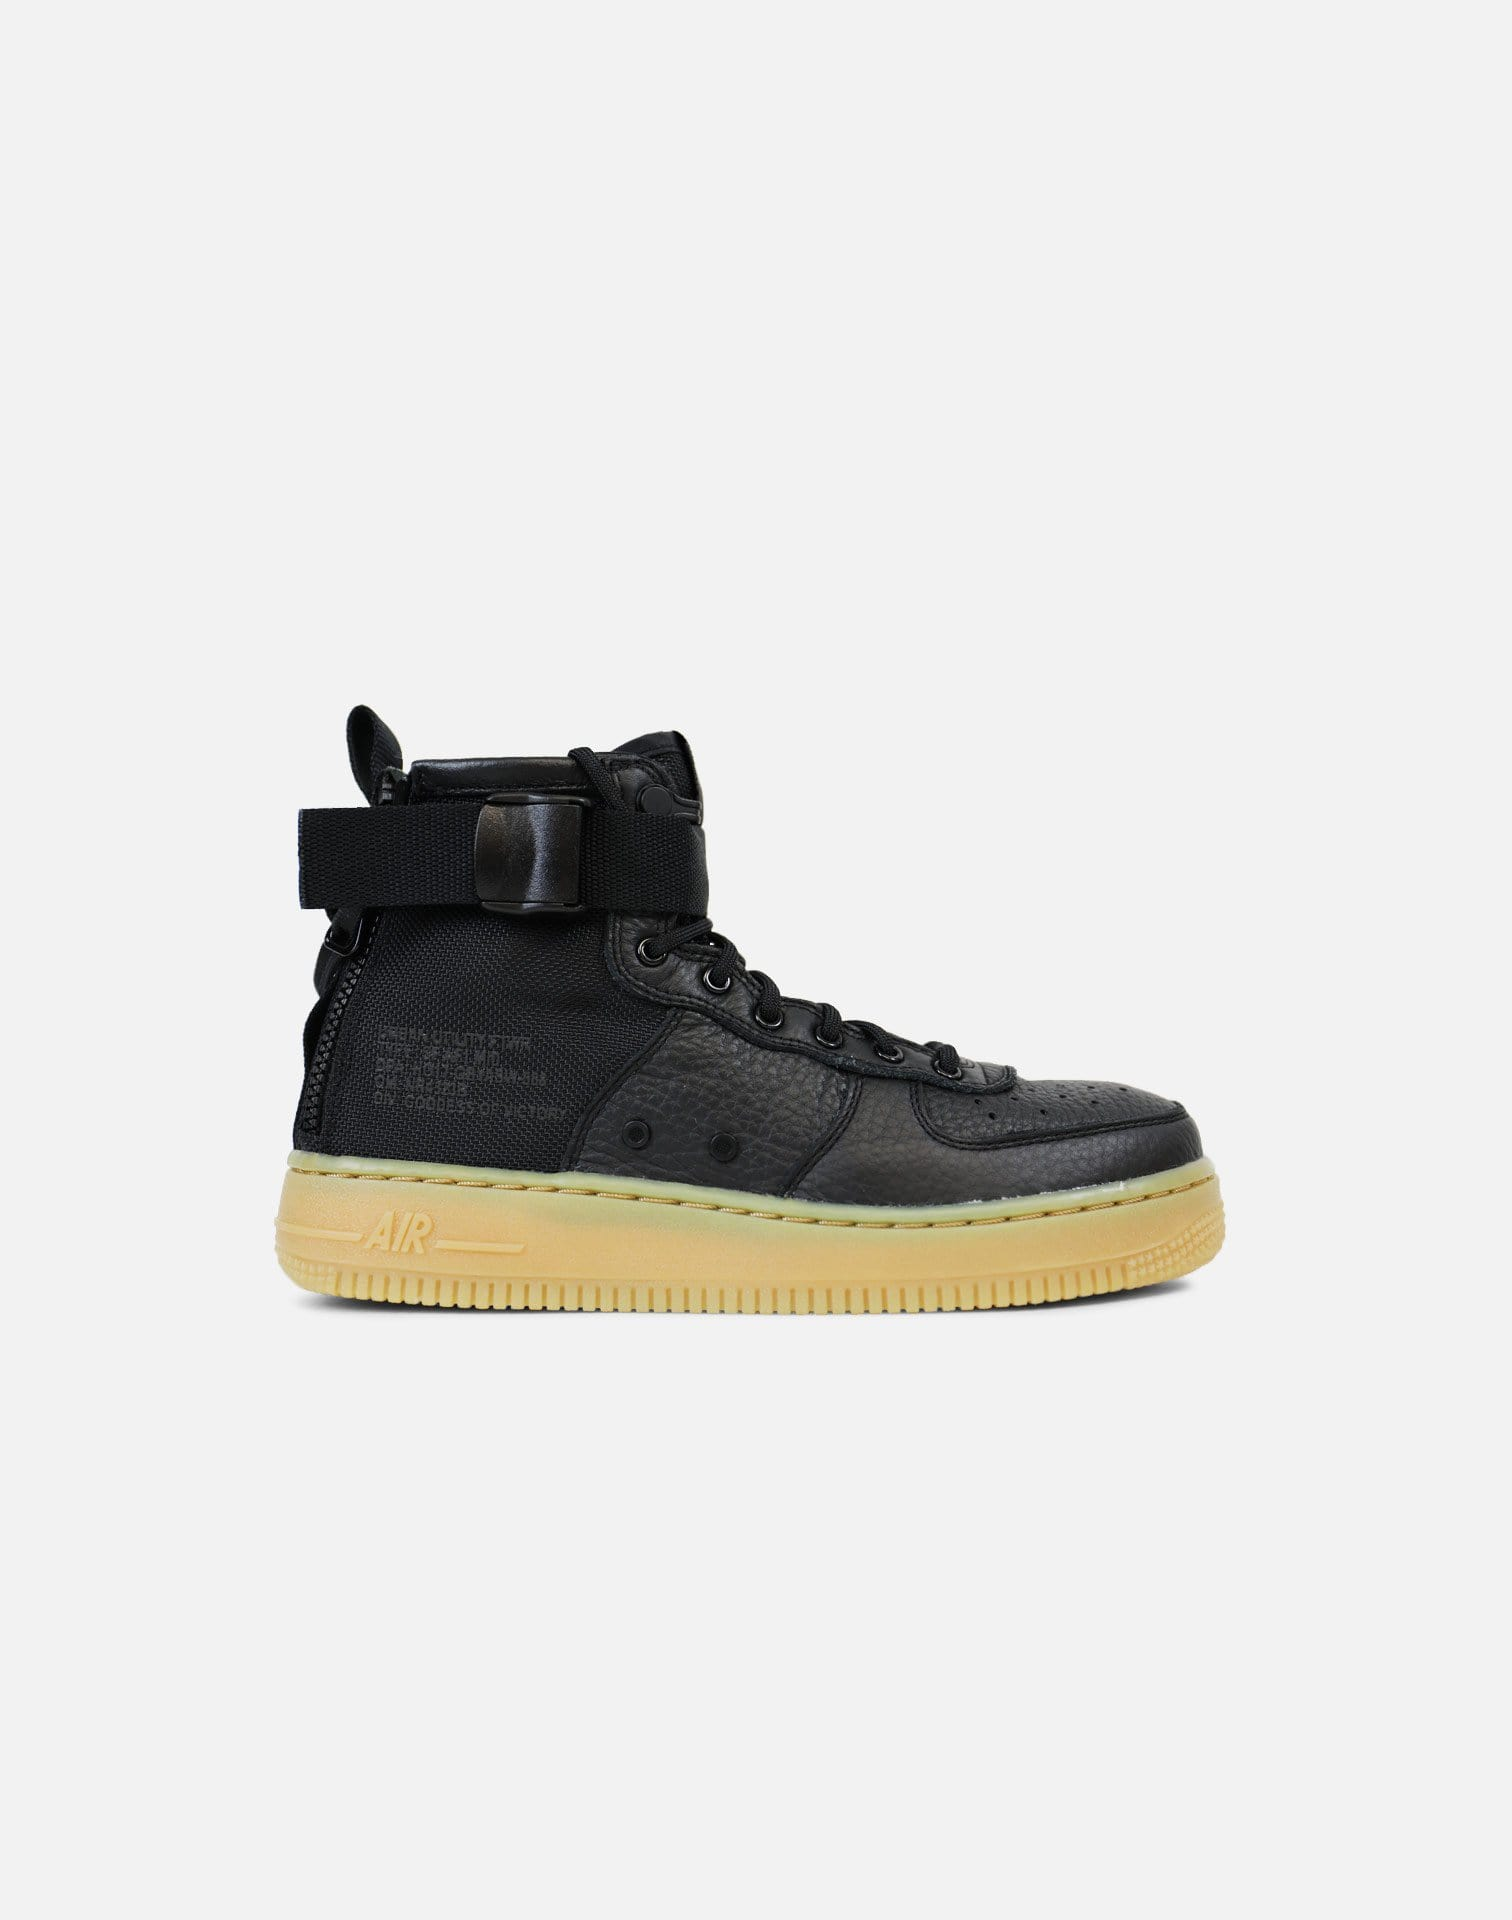 Nike SF Air Force 1 Mid 'Urban Utility' Grade-School (Black/Gum Light Brown)